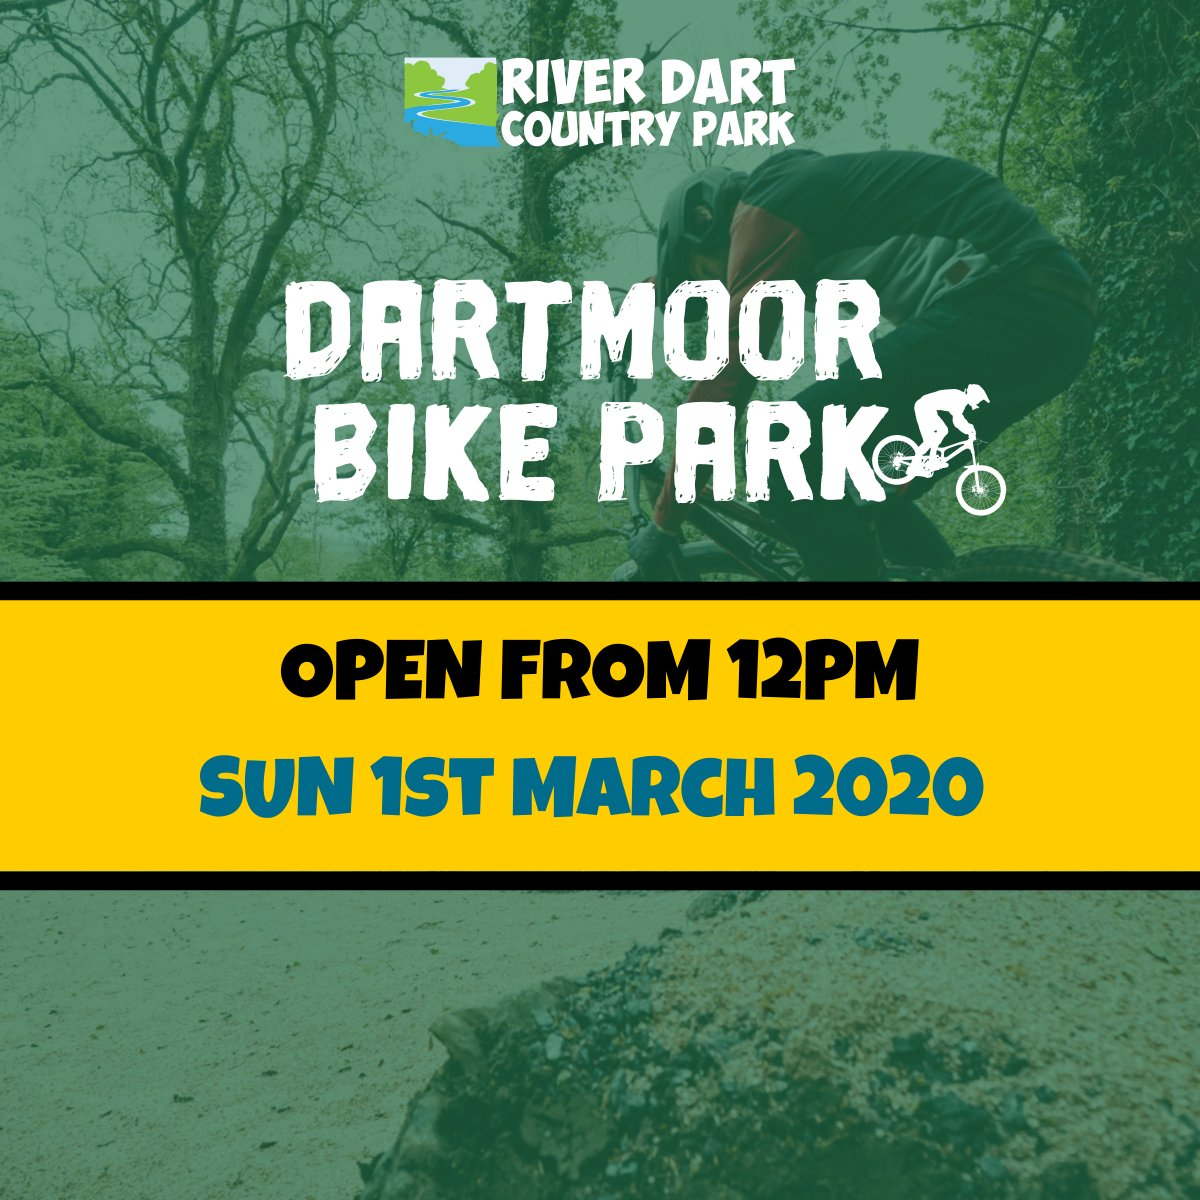 Dartmoor Bike Park is currently closed due to yellow weather warning. It is set to reopen at 12pm on Sunday 1st March. Apologies for any inconvenience caused.